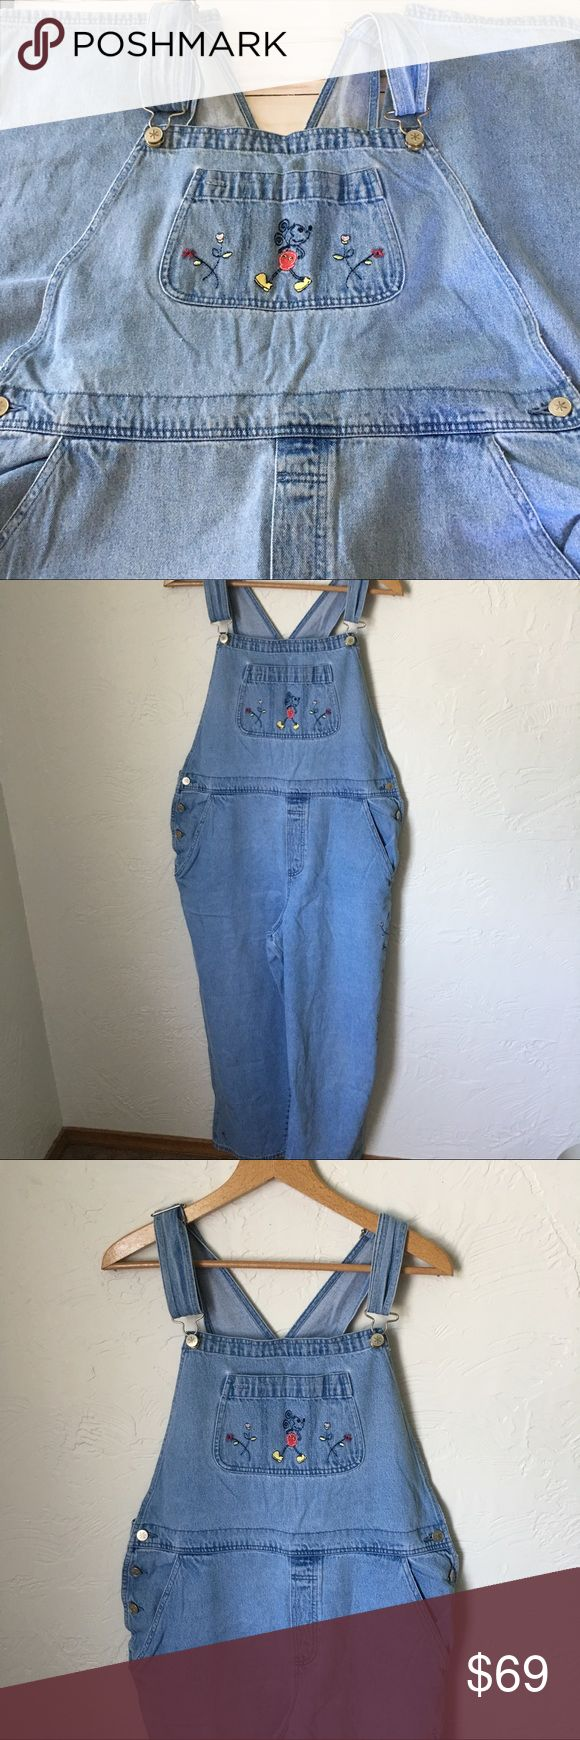 """Vintage Disney Mickey Mouse denim bib  overalls Vintage Disney Mickey Mouse denim bib overalls.  Embroidered Mickey Mouse and flowers in front bob pocket down left leg and on back.  18"""" waist measurement when laid flat. 13"""" rise 9"""" leg opening 56"""" in length. The straps are adjustable. Disney Jeans Overalls"""